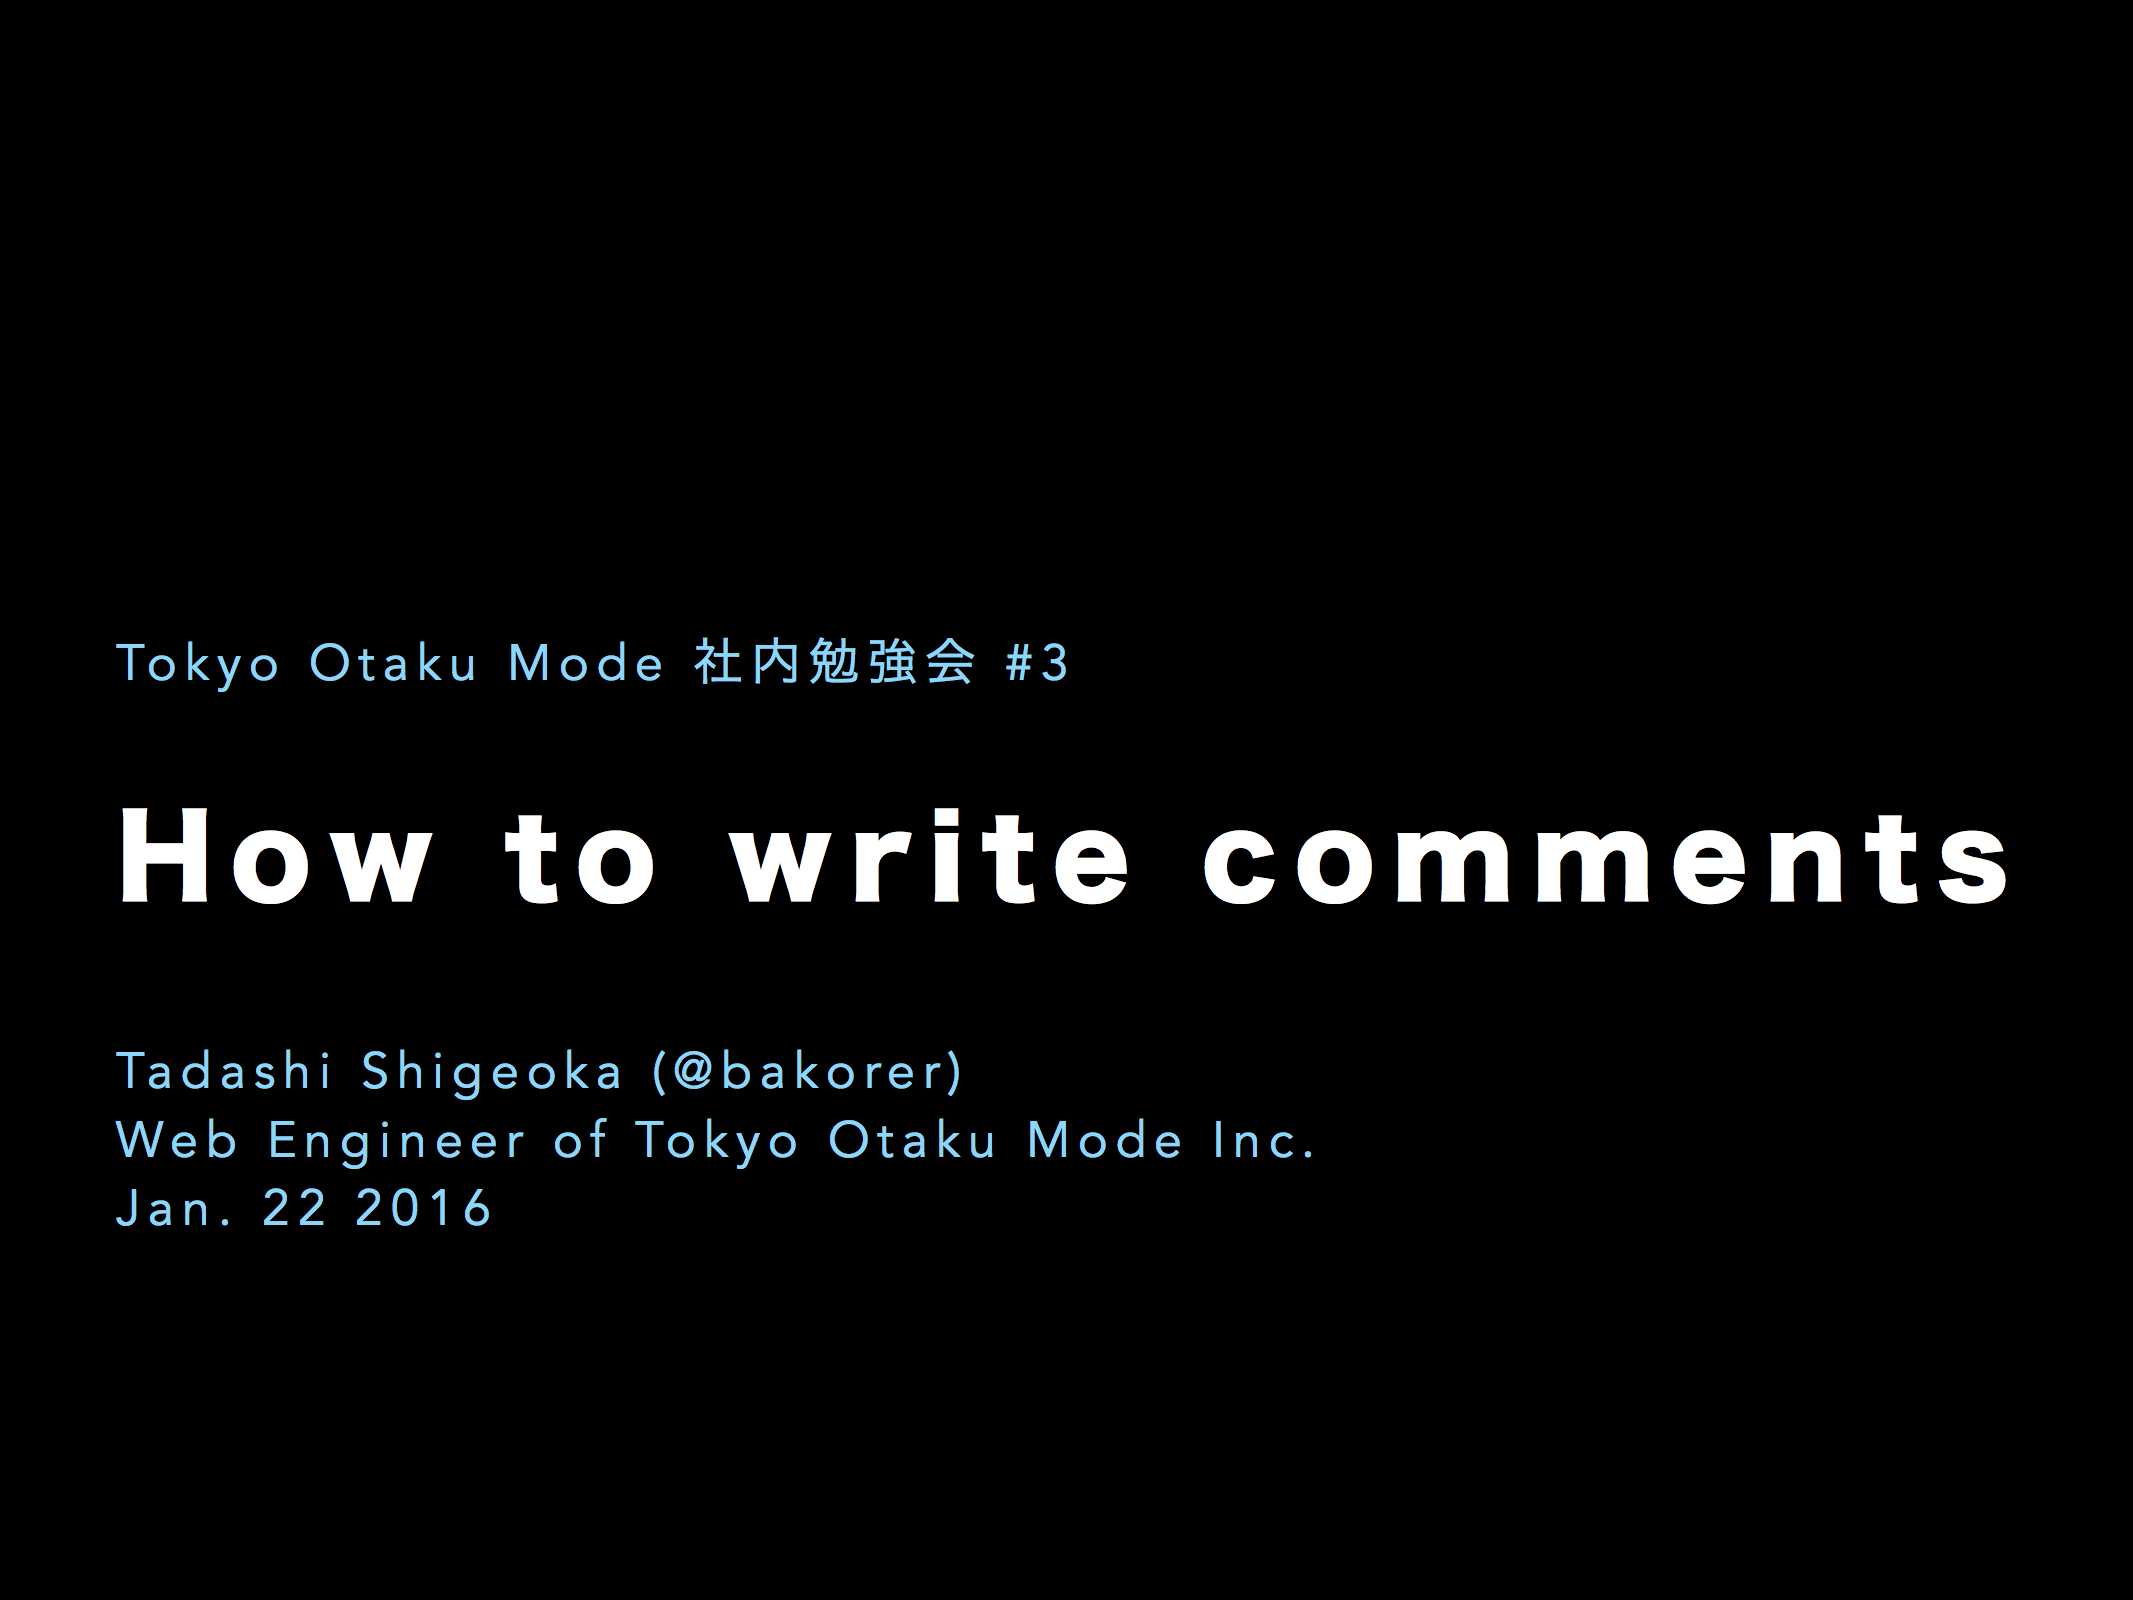 2016-01-22-how-to-write-comments